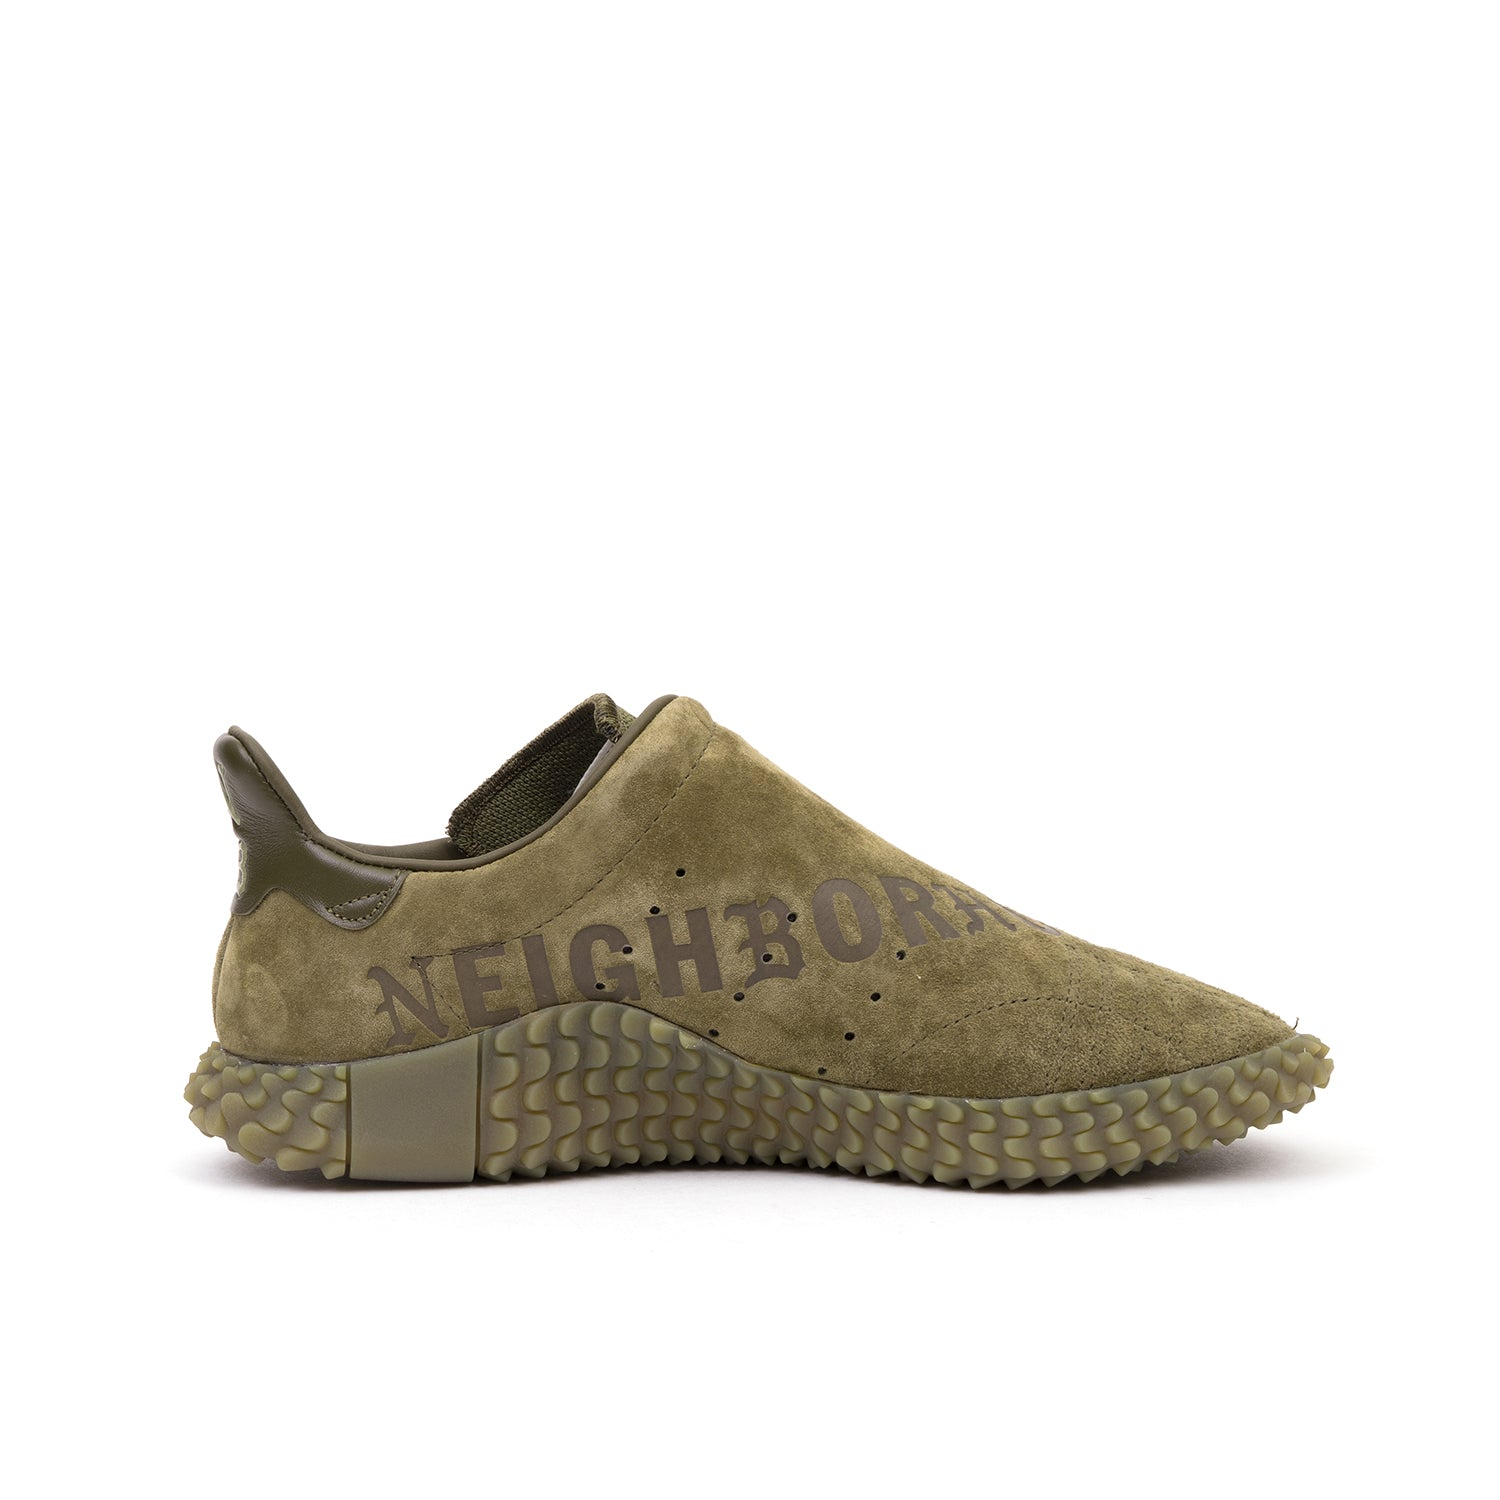 4aeb0aafca6d75 adidas Originals x NEIGHBORHOOD Kamanda 01 NBHD Trace Olive – Concrete